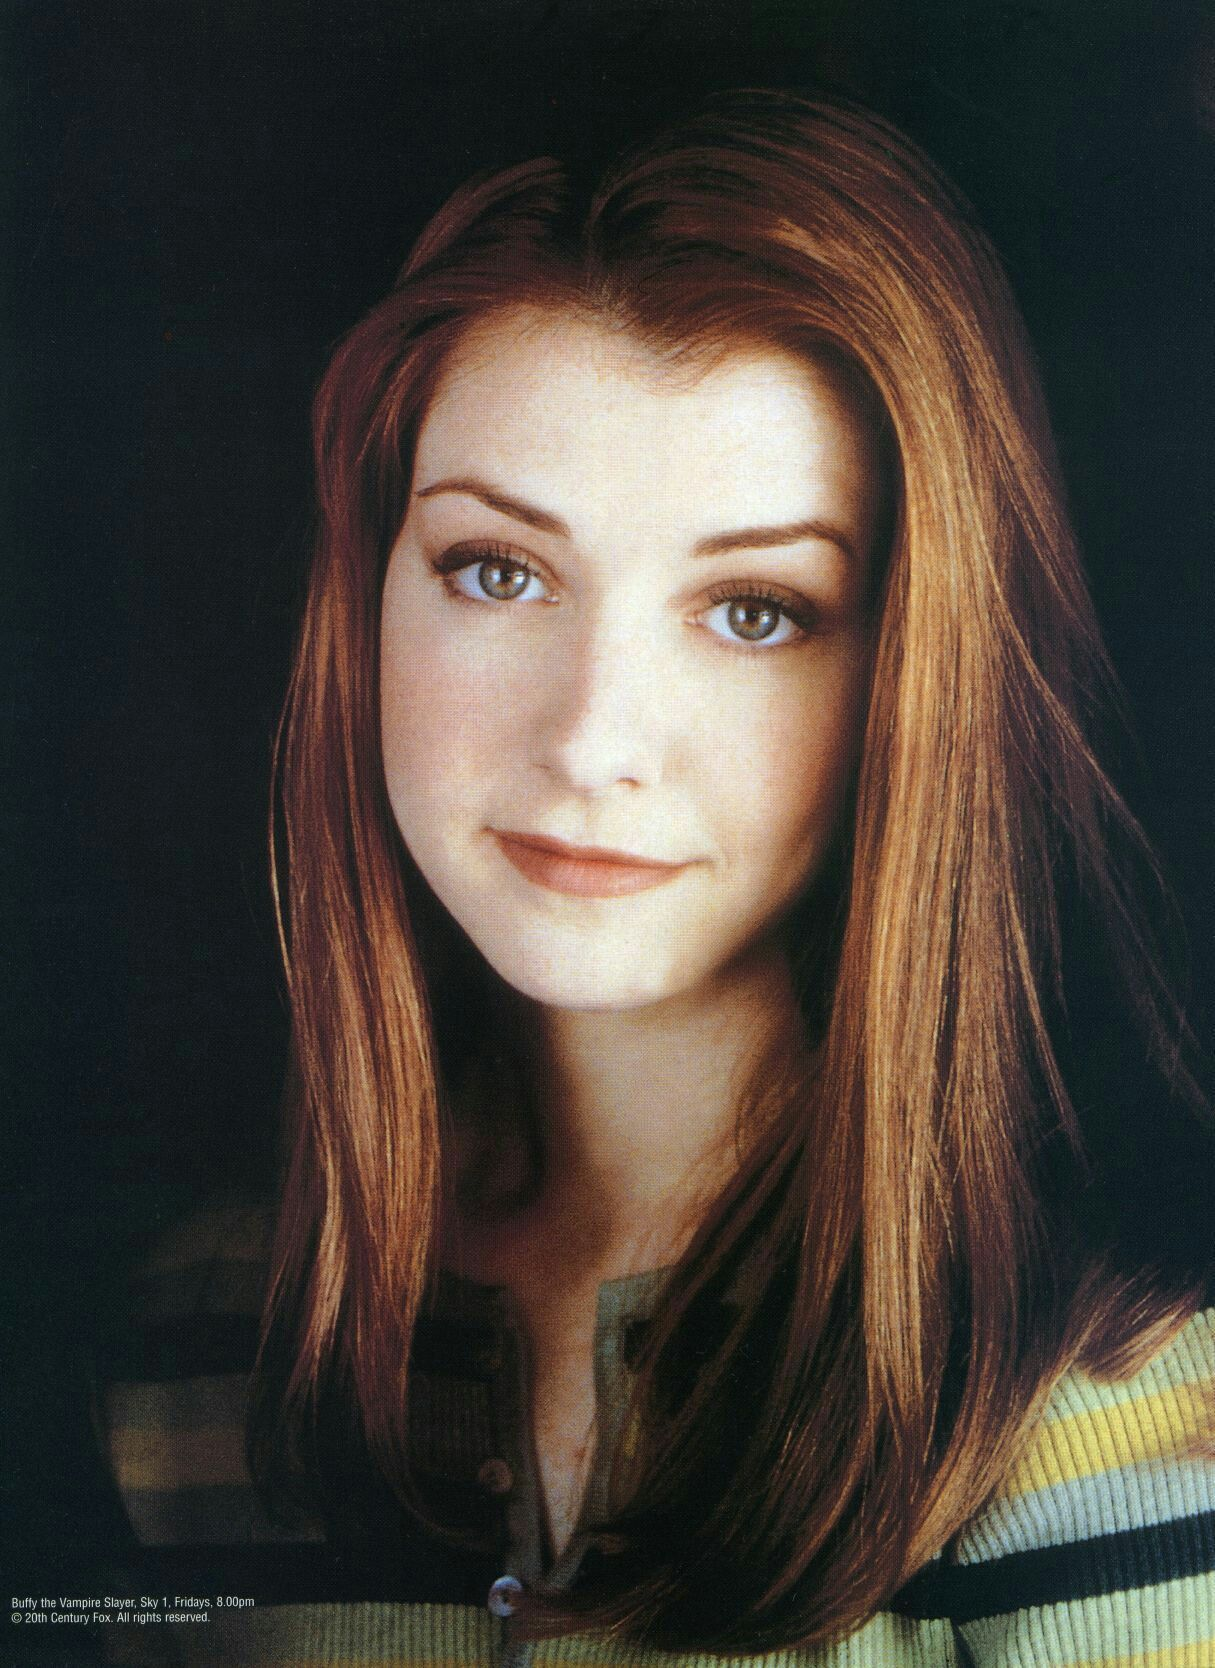 Alyson Hannigan born March 24, 1974 (age 44) Alyson Hannigan born March 24, 1974 (age 44) new foto